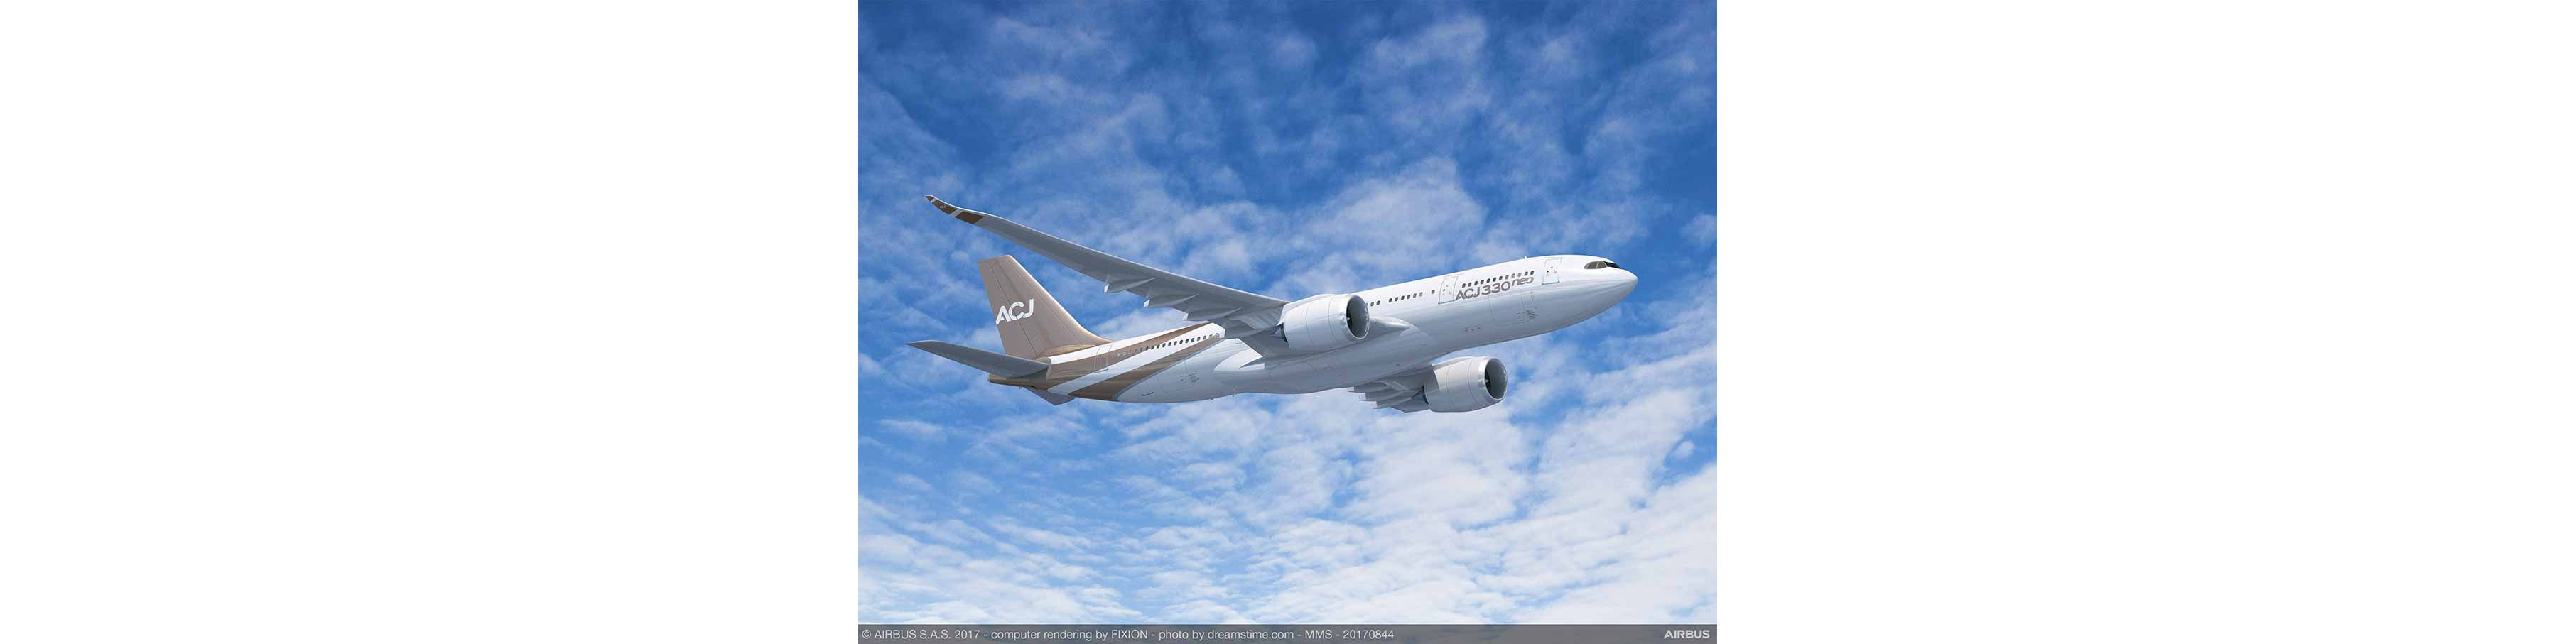 https://airbus-h.assetsadobe2.com/is/image/content/dam/products-and-solutions/commercial-aircraft/corporate-jets/acj330/ACJ330neo_01_.jpg?wid=3626&fit=constrain